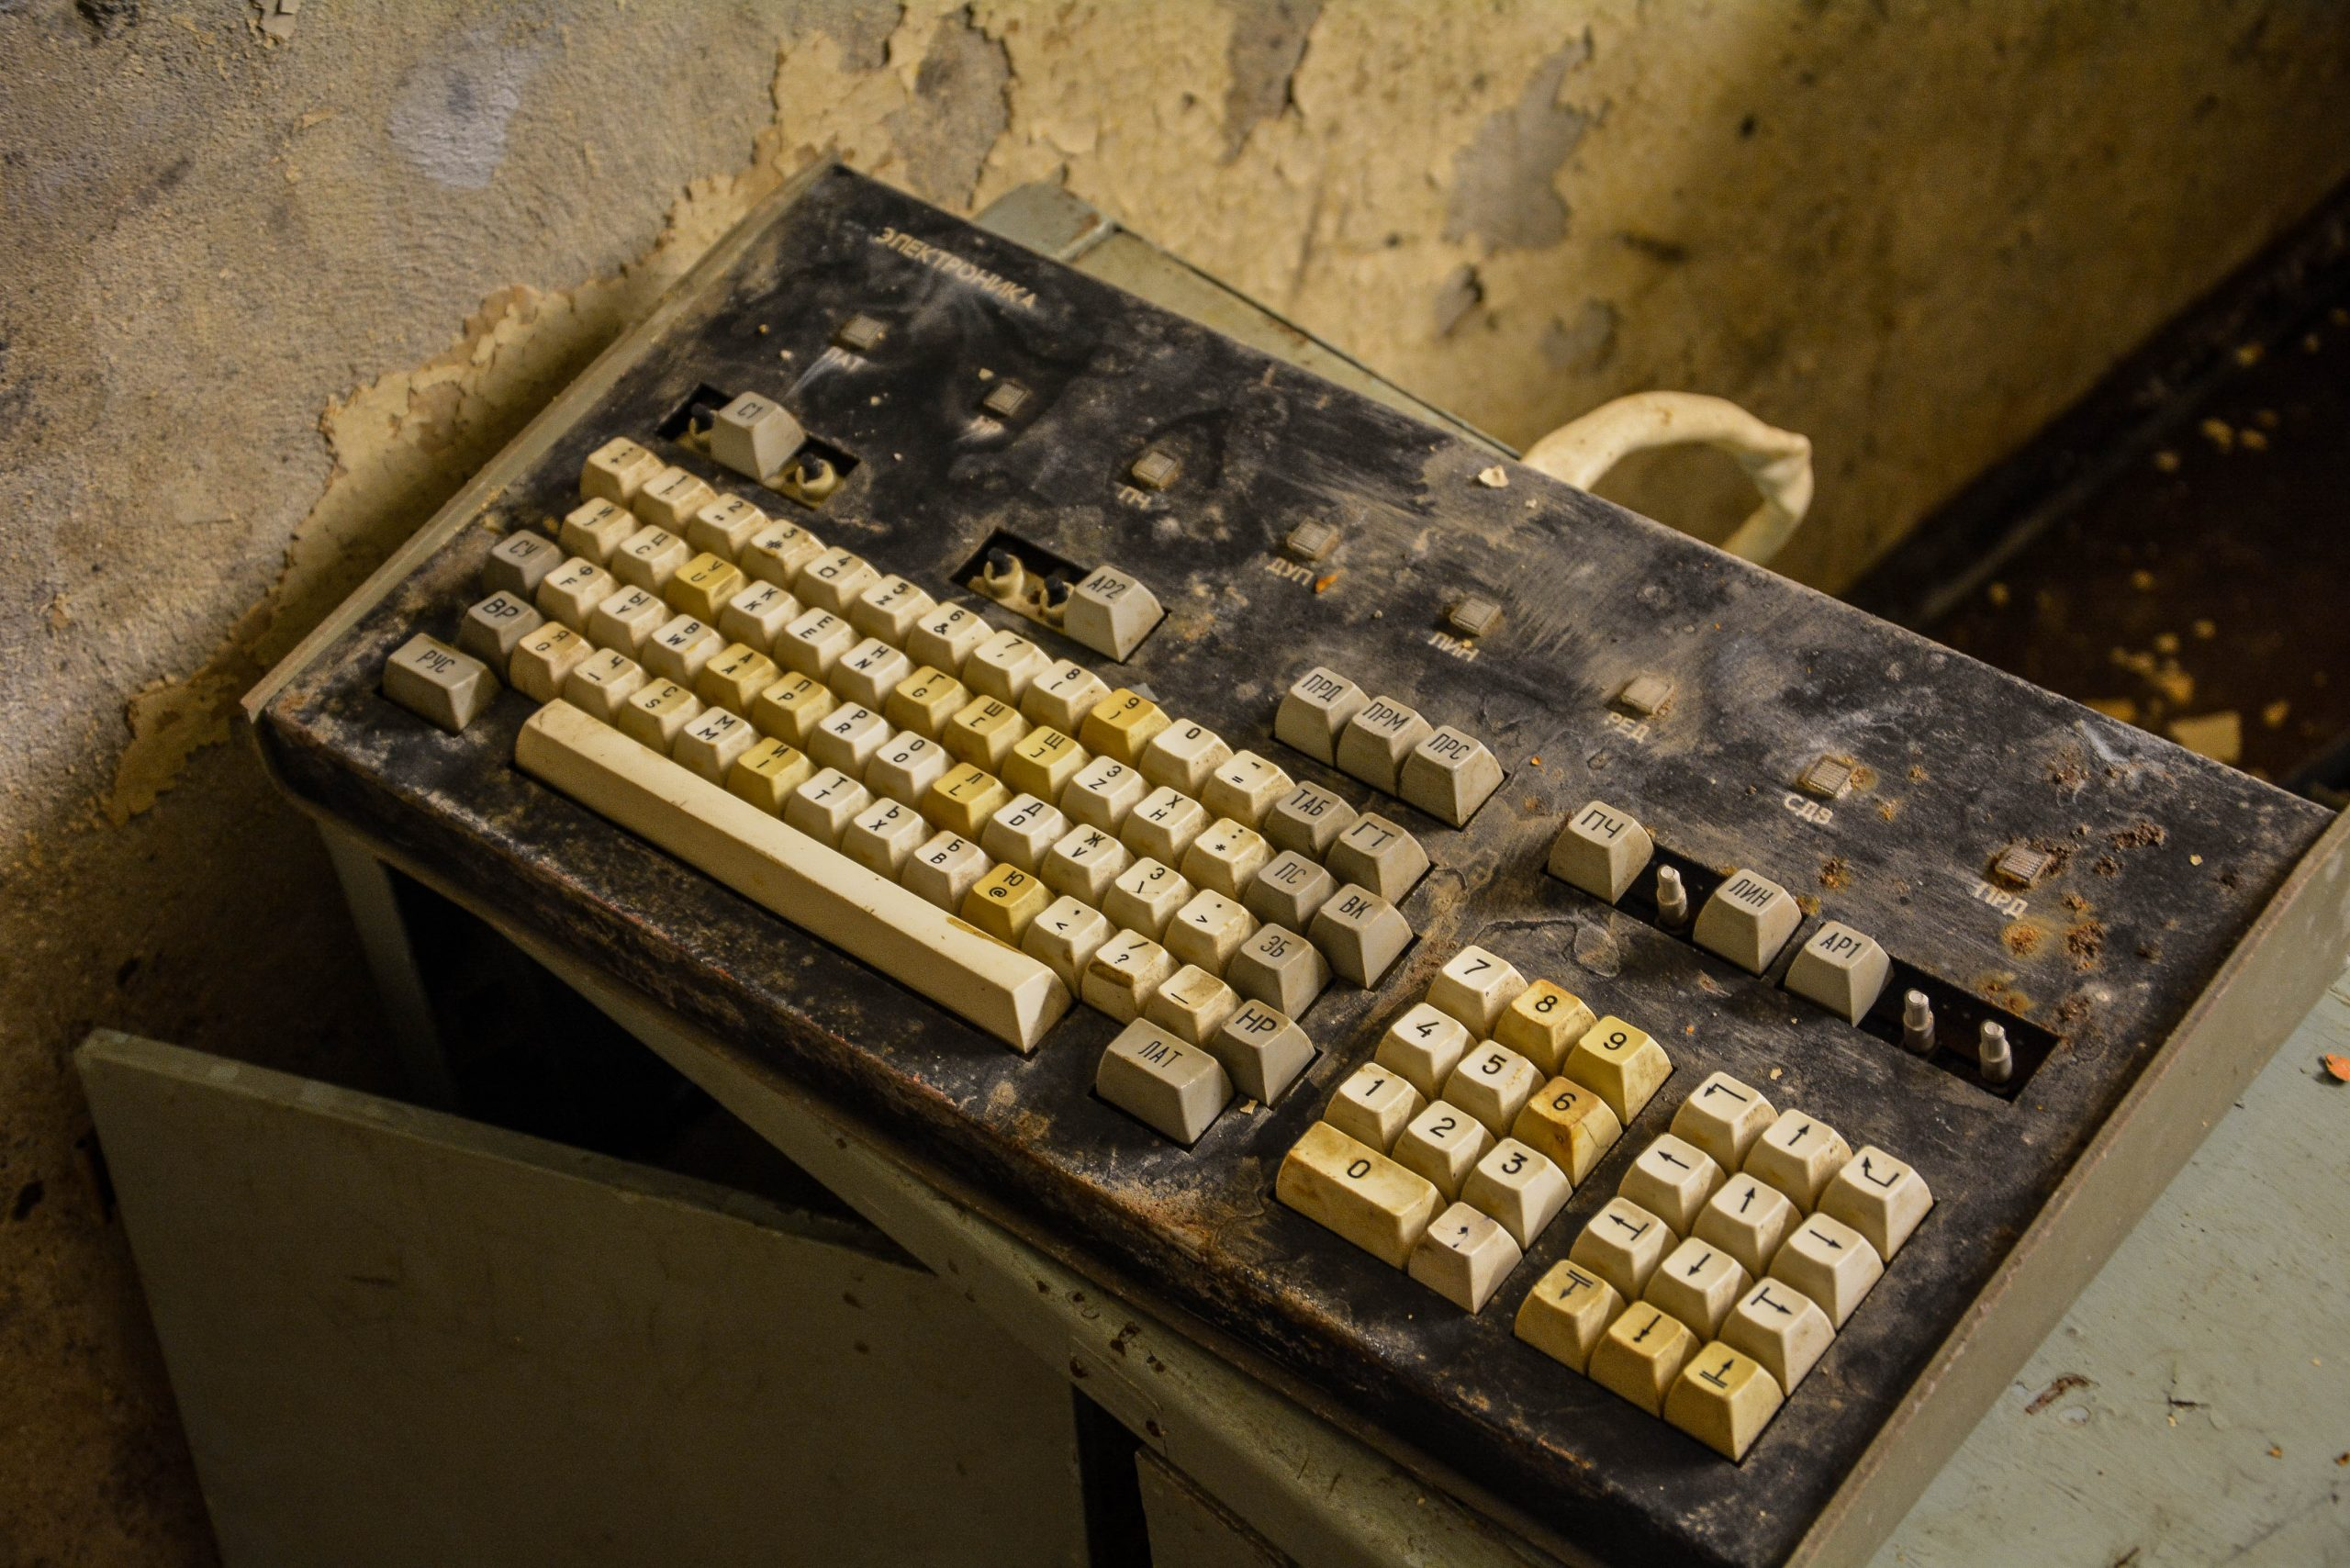 soviet keyboard bunker zeppelin amt 500 maybach bunker ranet wehrmacht sowjet soviet military zossen brandenburg germany lost palces urbex abandoned